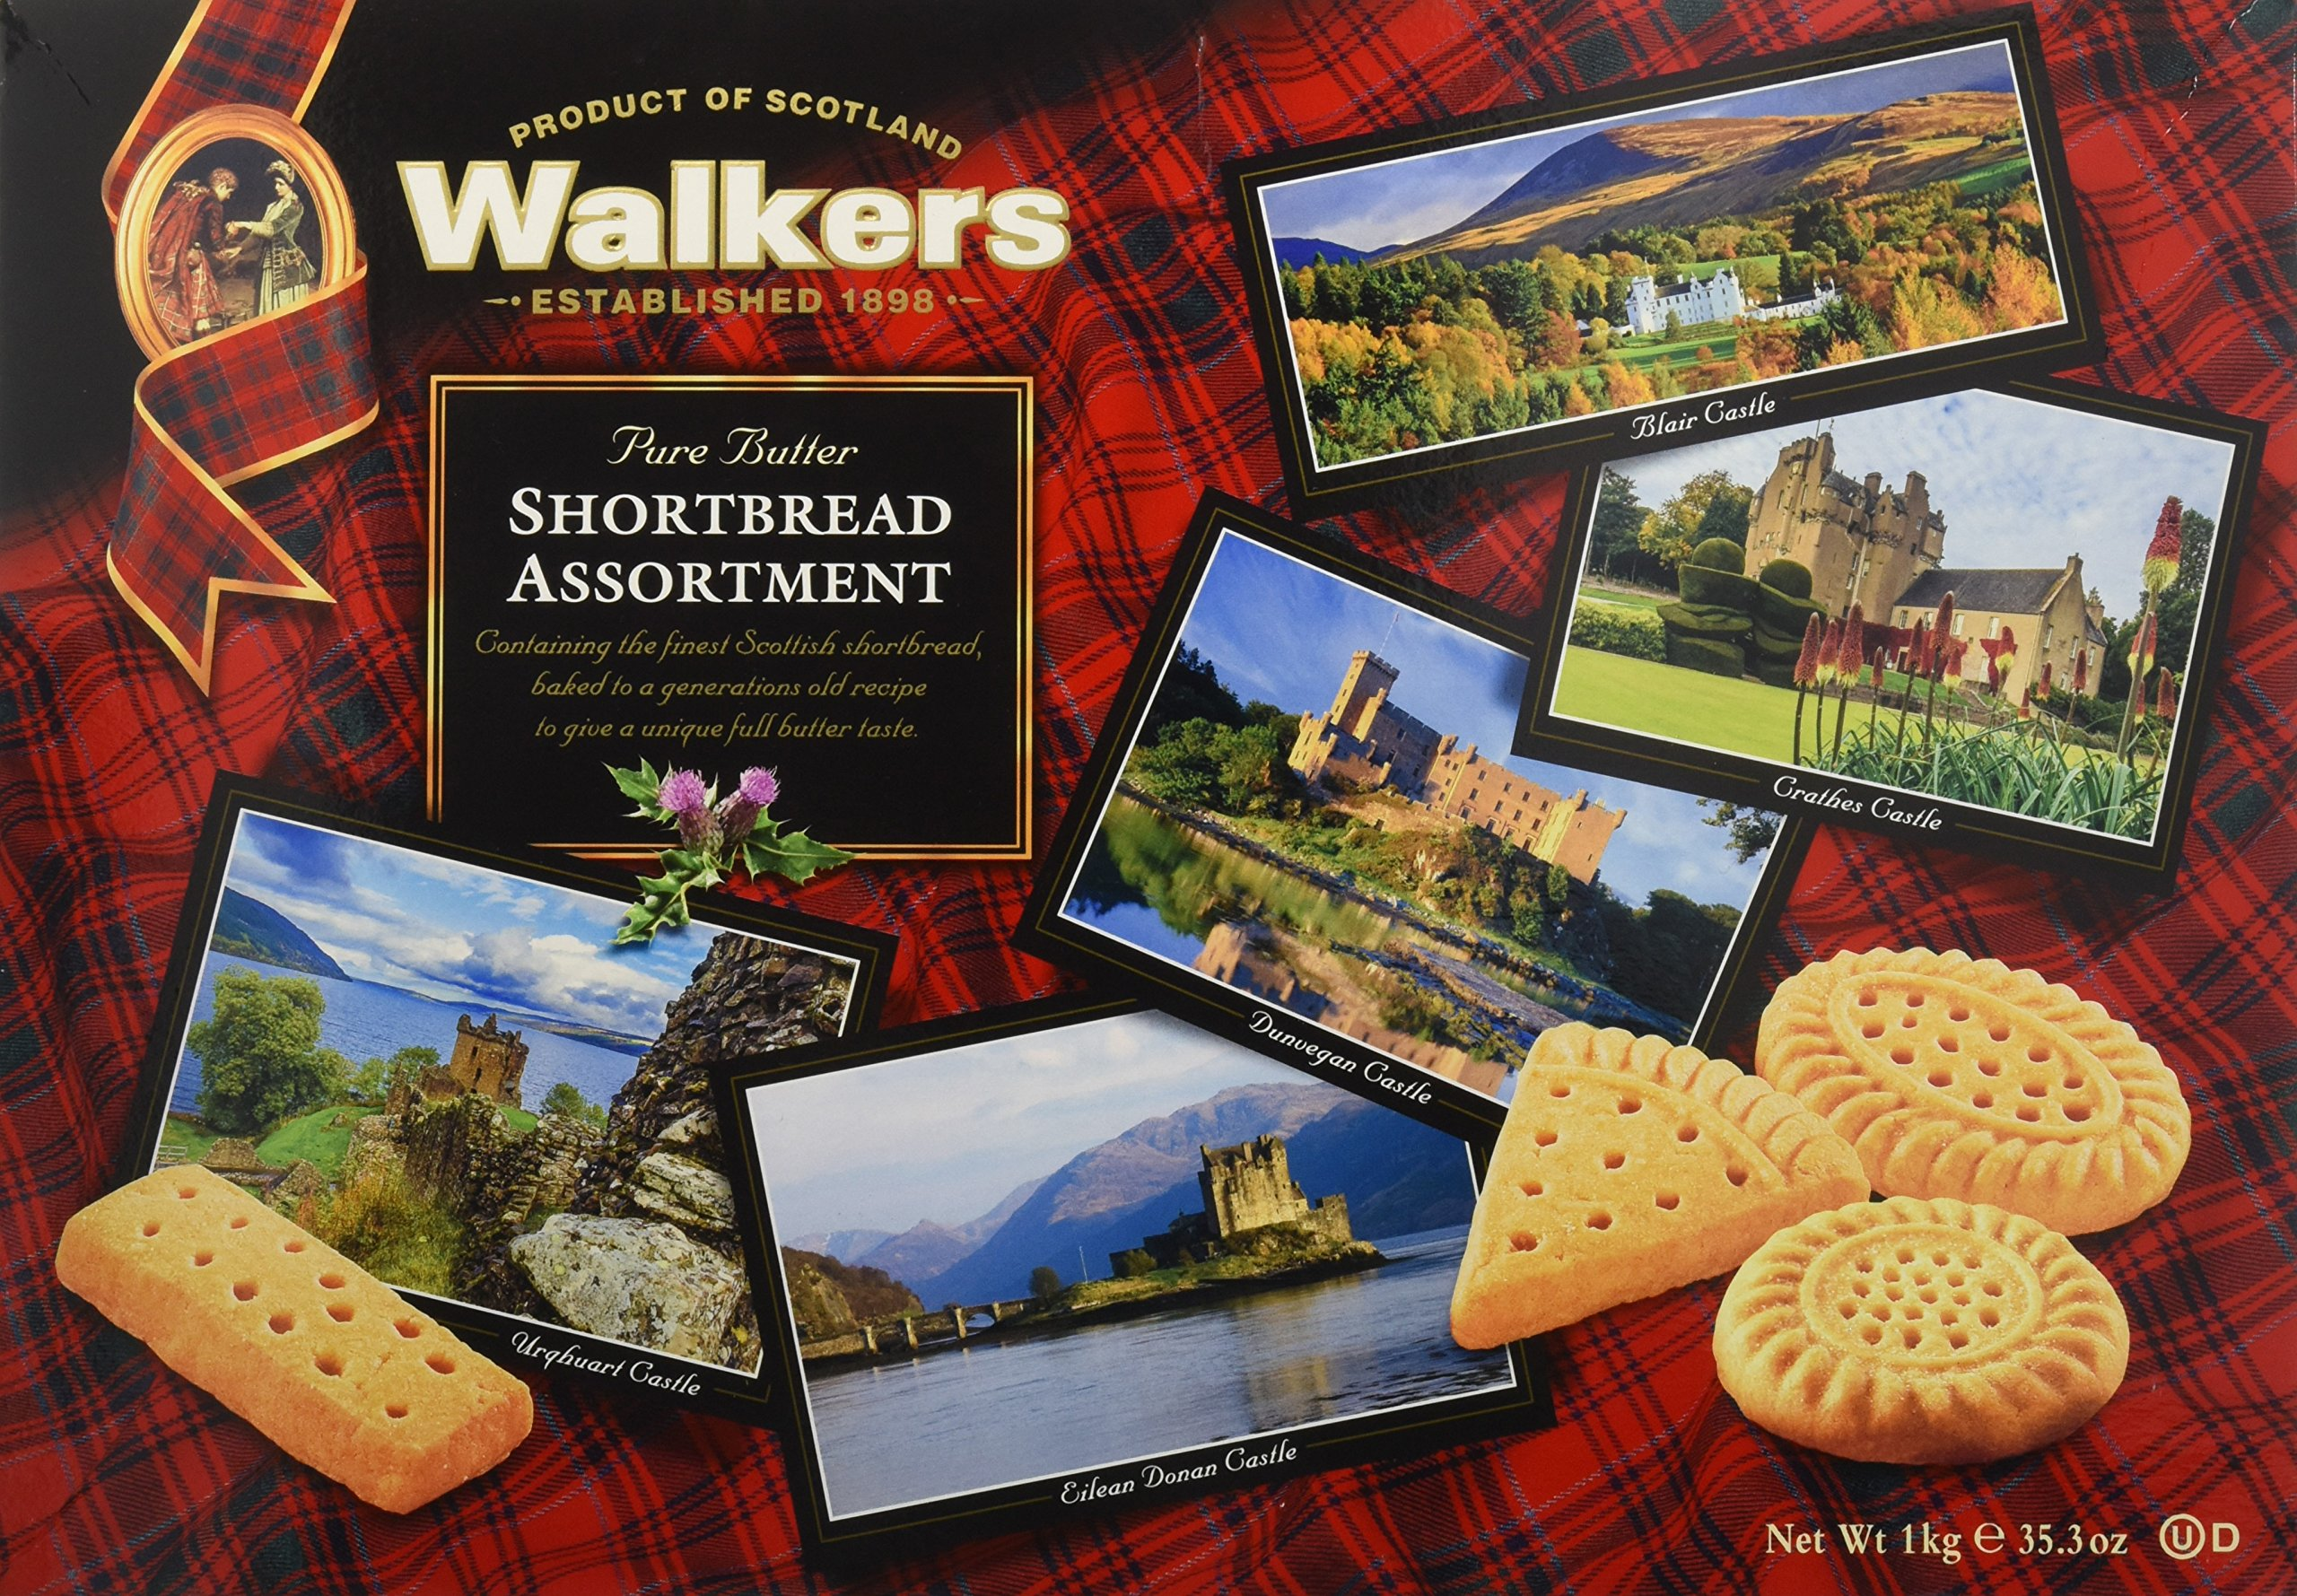 Walkers Shortbread Assorted Shortbread Cookies, 35.3 Ounce, Traditional and Simple Pure Butter Shortbread Cookies from the Scottish Highlands, Quality Ingredients, Free from Artificial Flavors